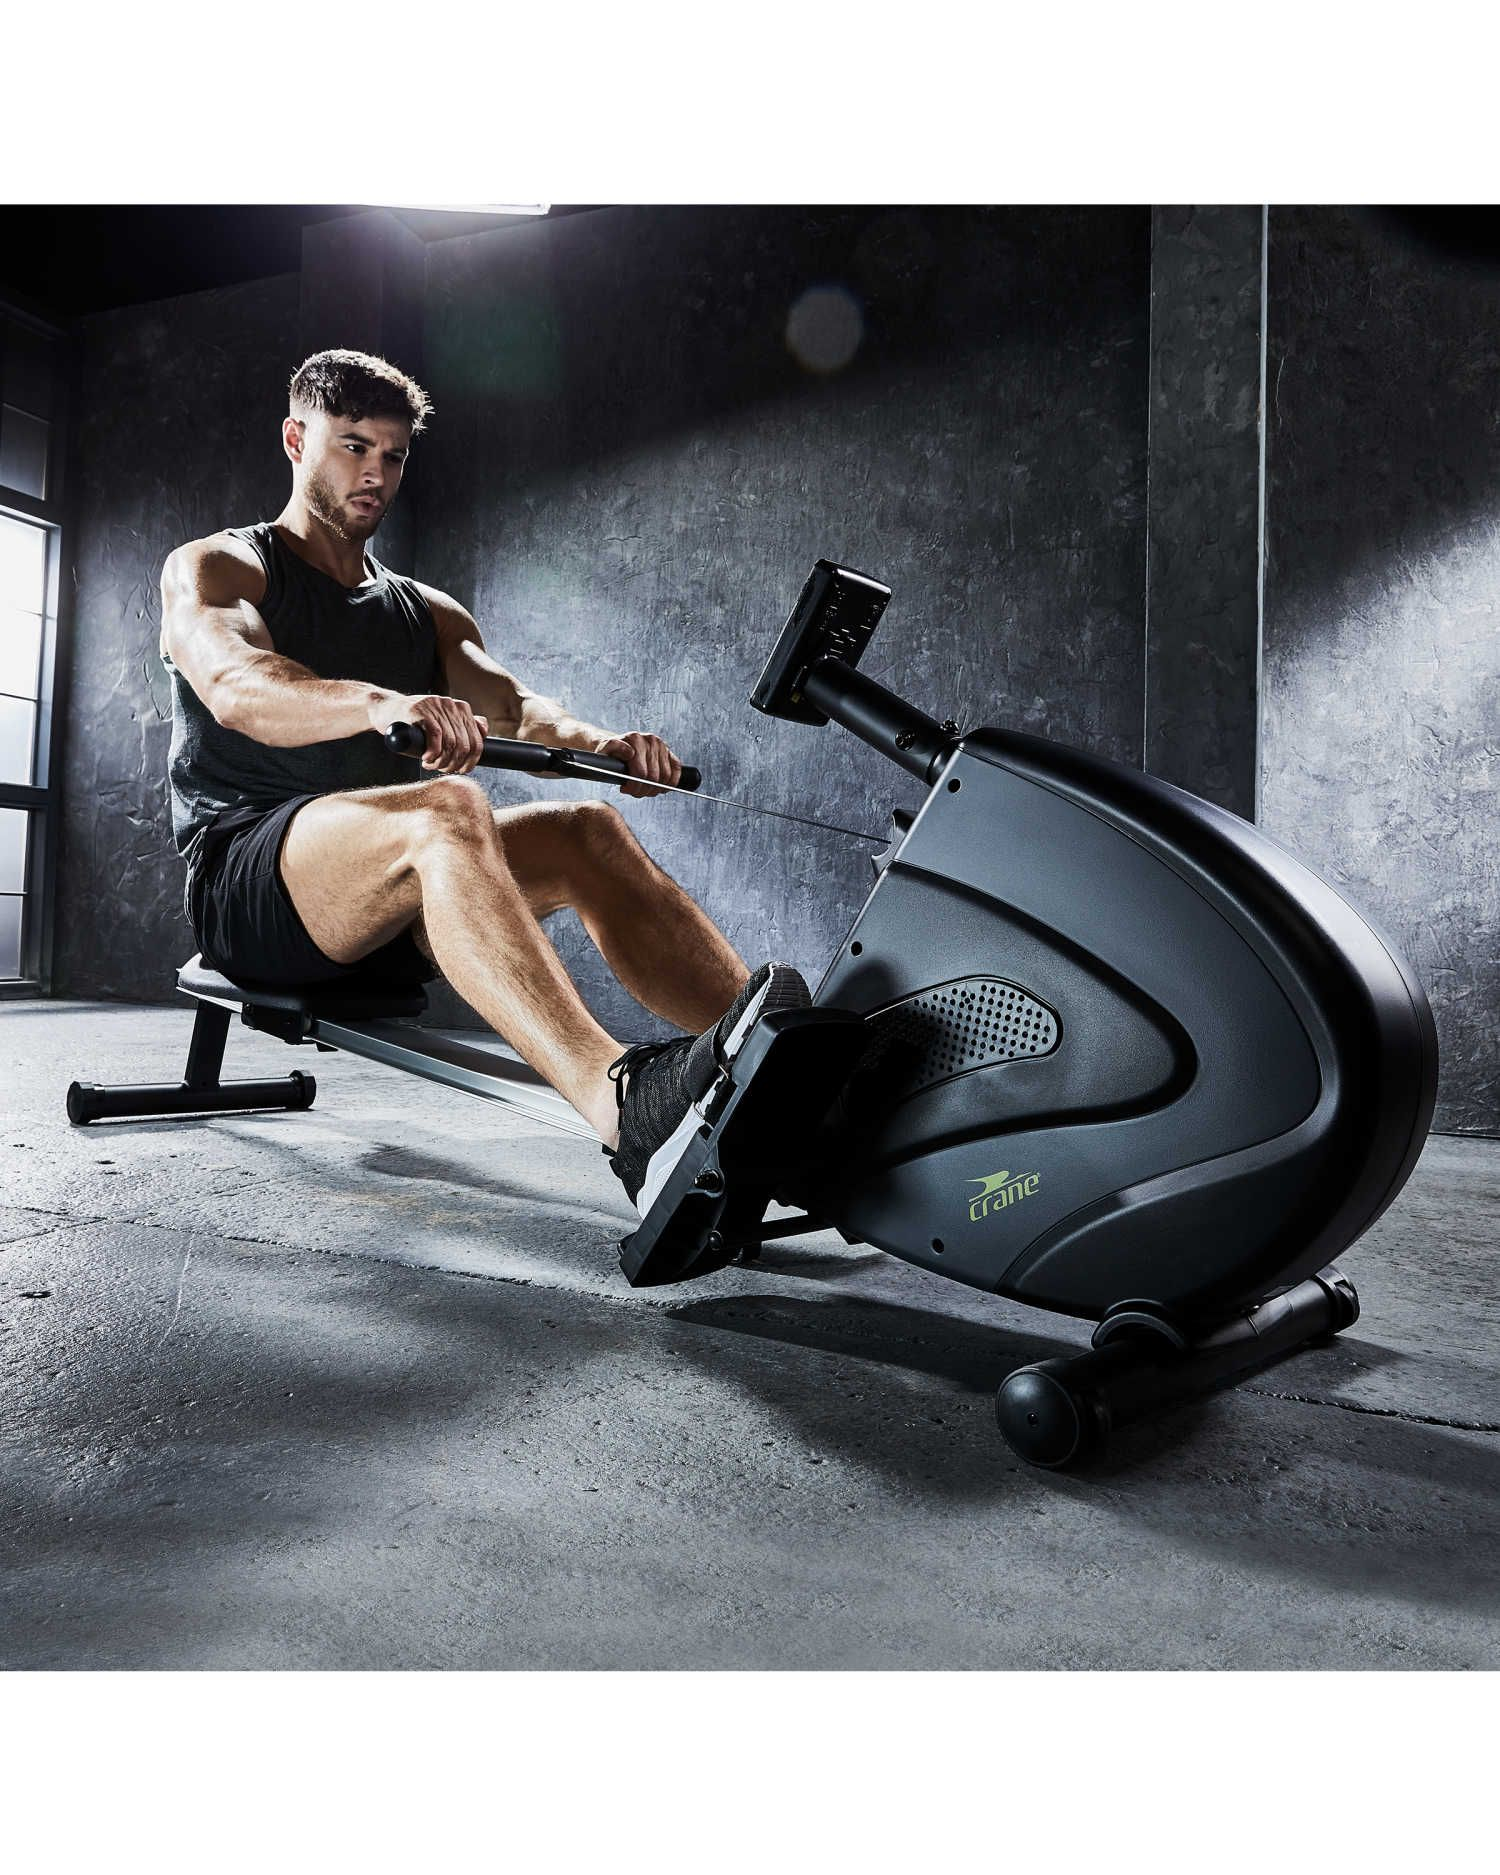 4233ea7bf6 Aldi s new fitness range will seriously upgrade your home-gym